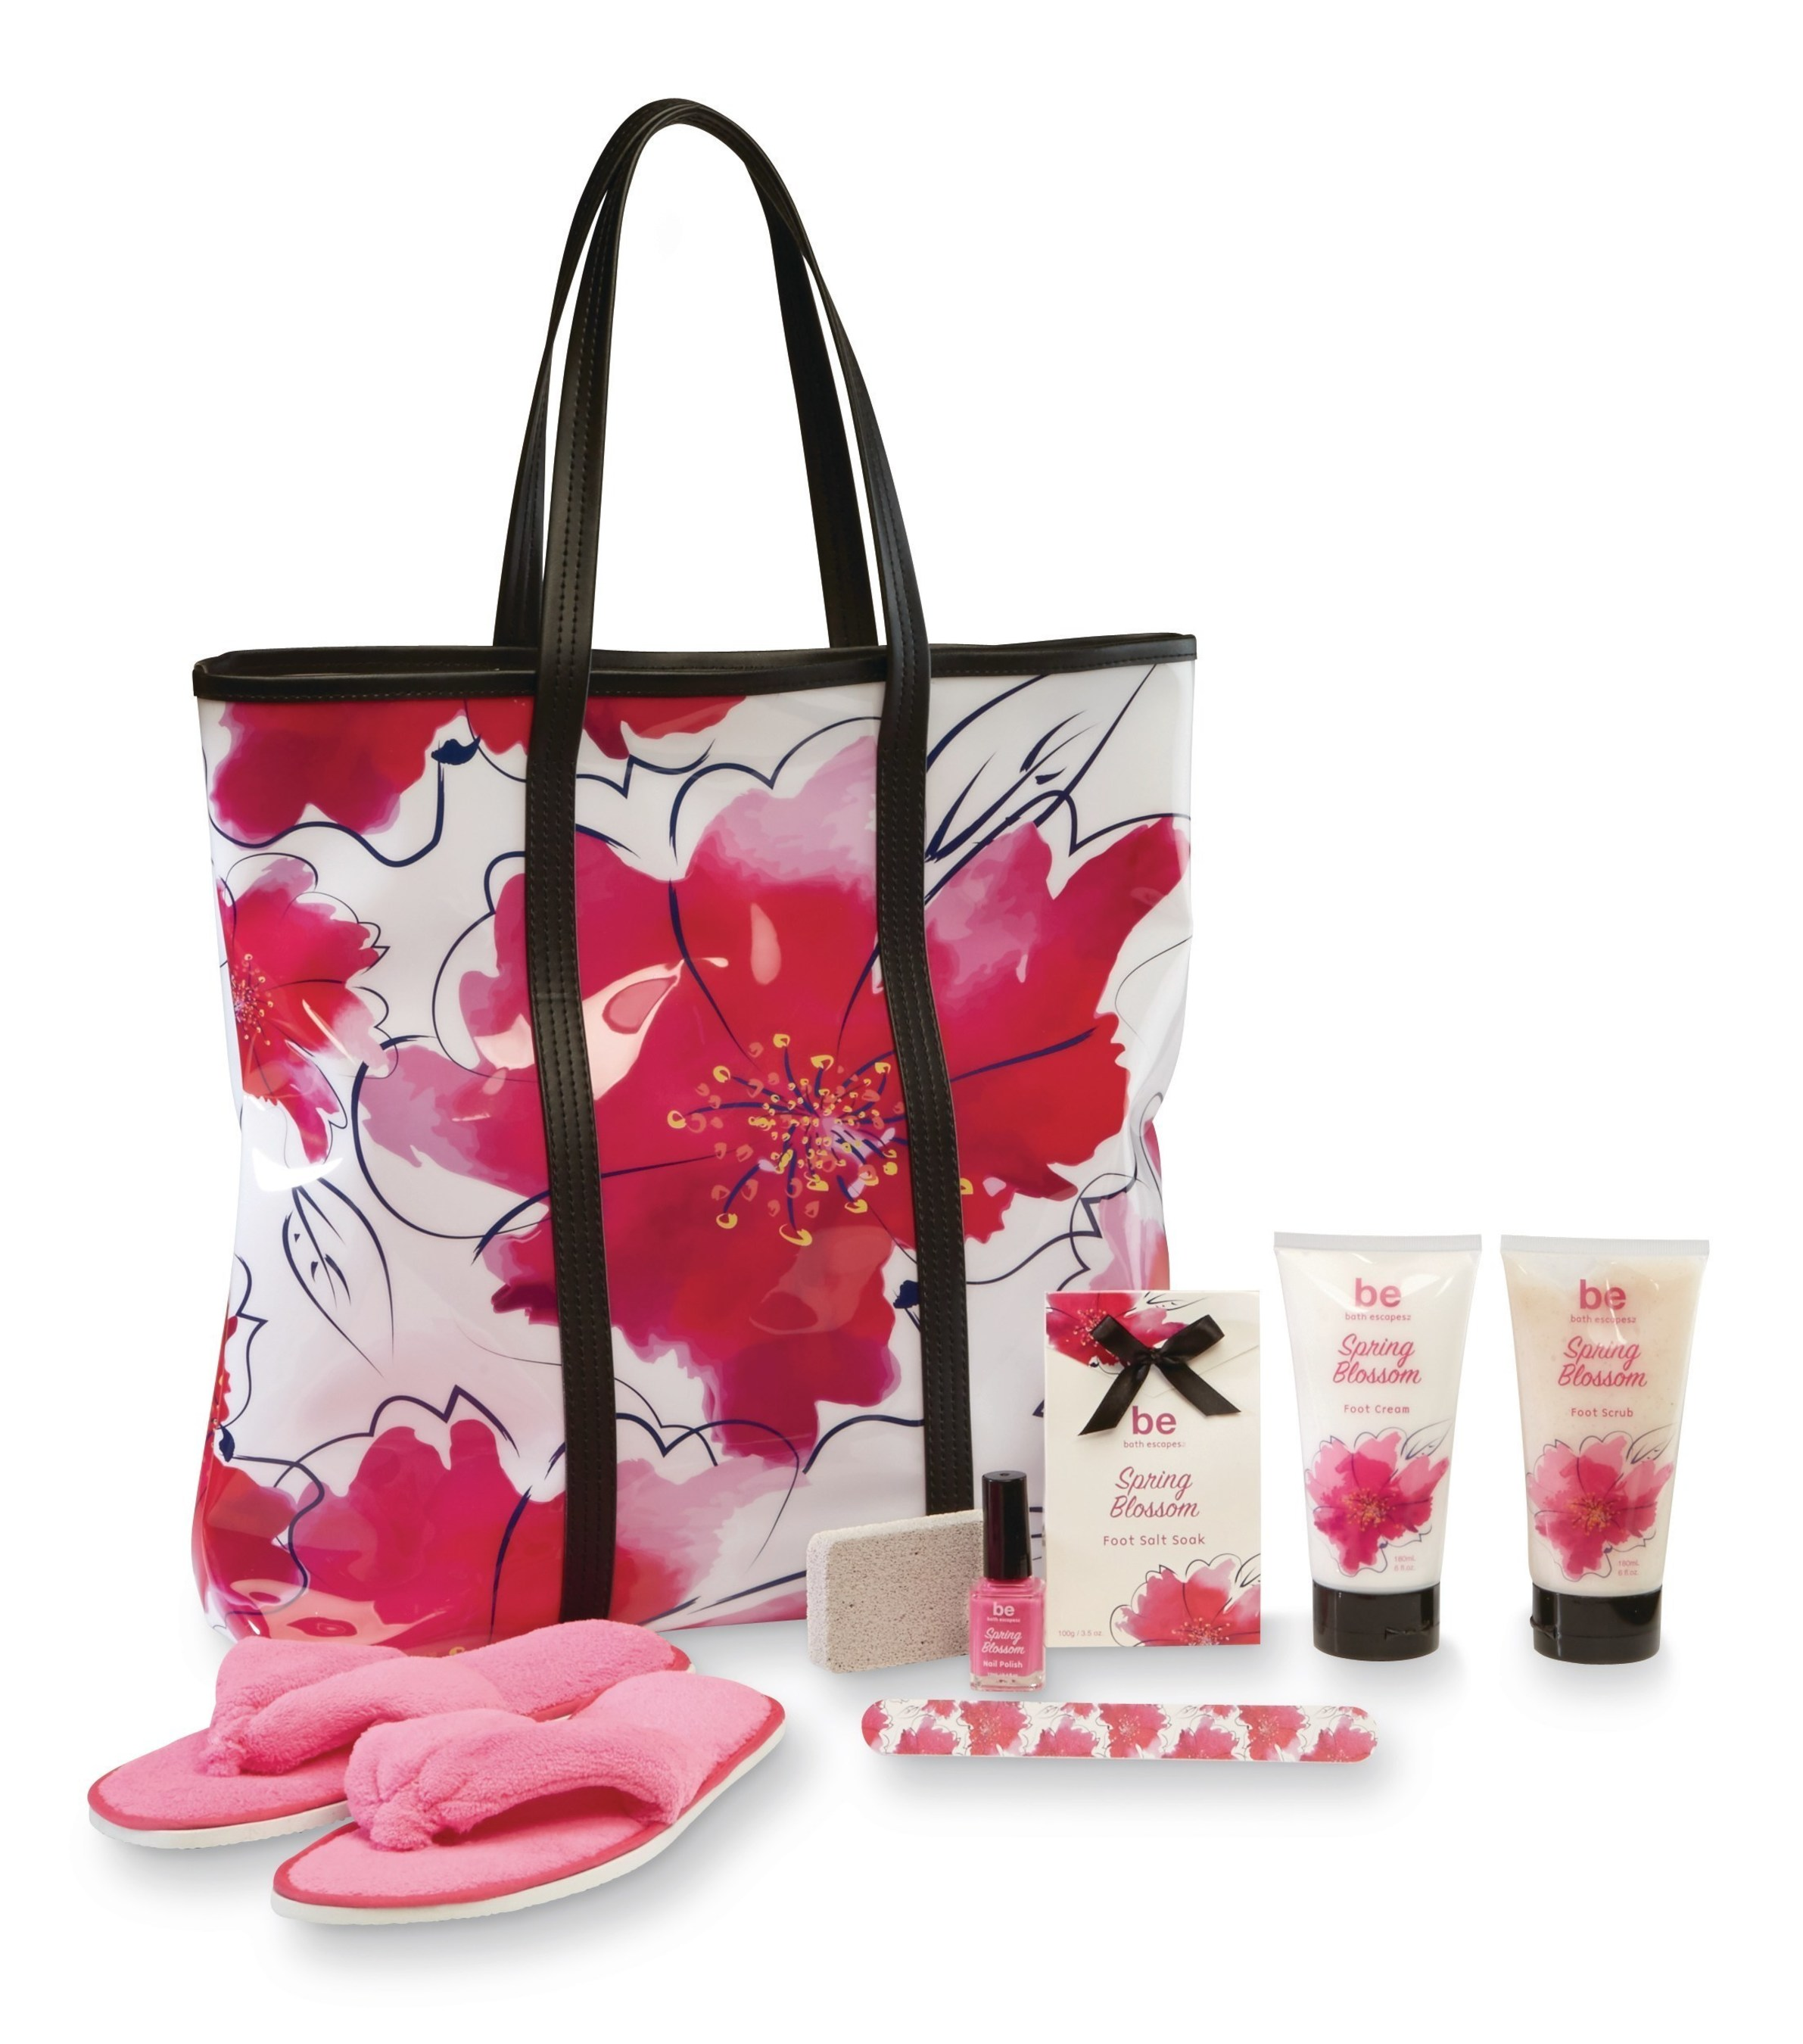 Kmart's Exclusive Mother's Day Spa-Inspired Beauty Bag